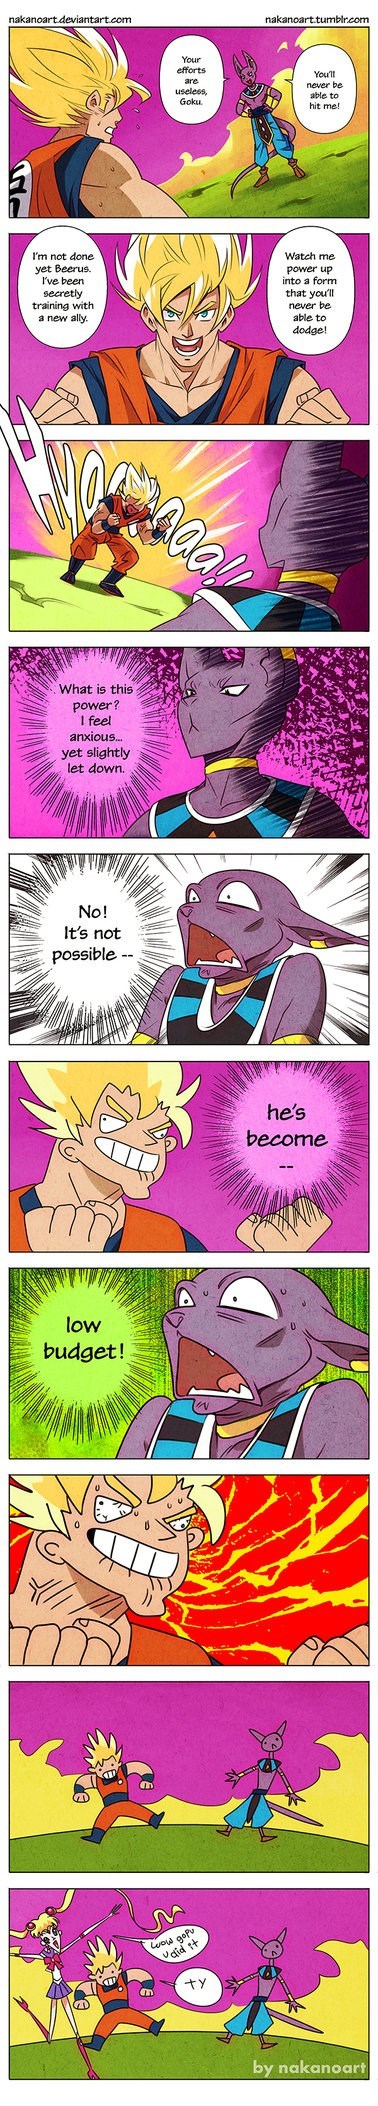 anime Fan Art Dragon Ball Z web comics - 8558259456